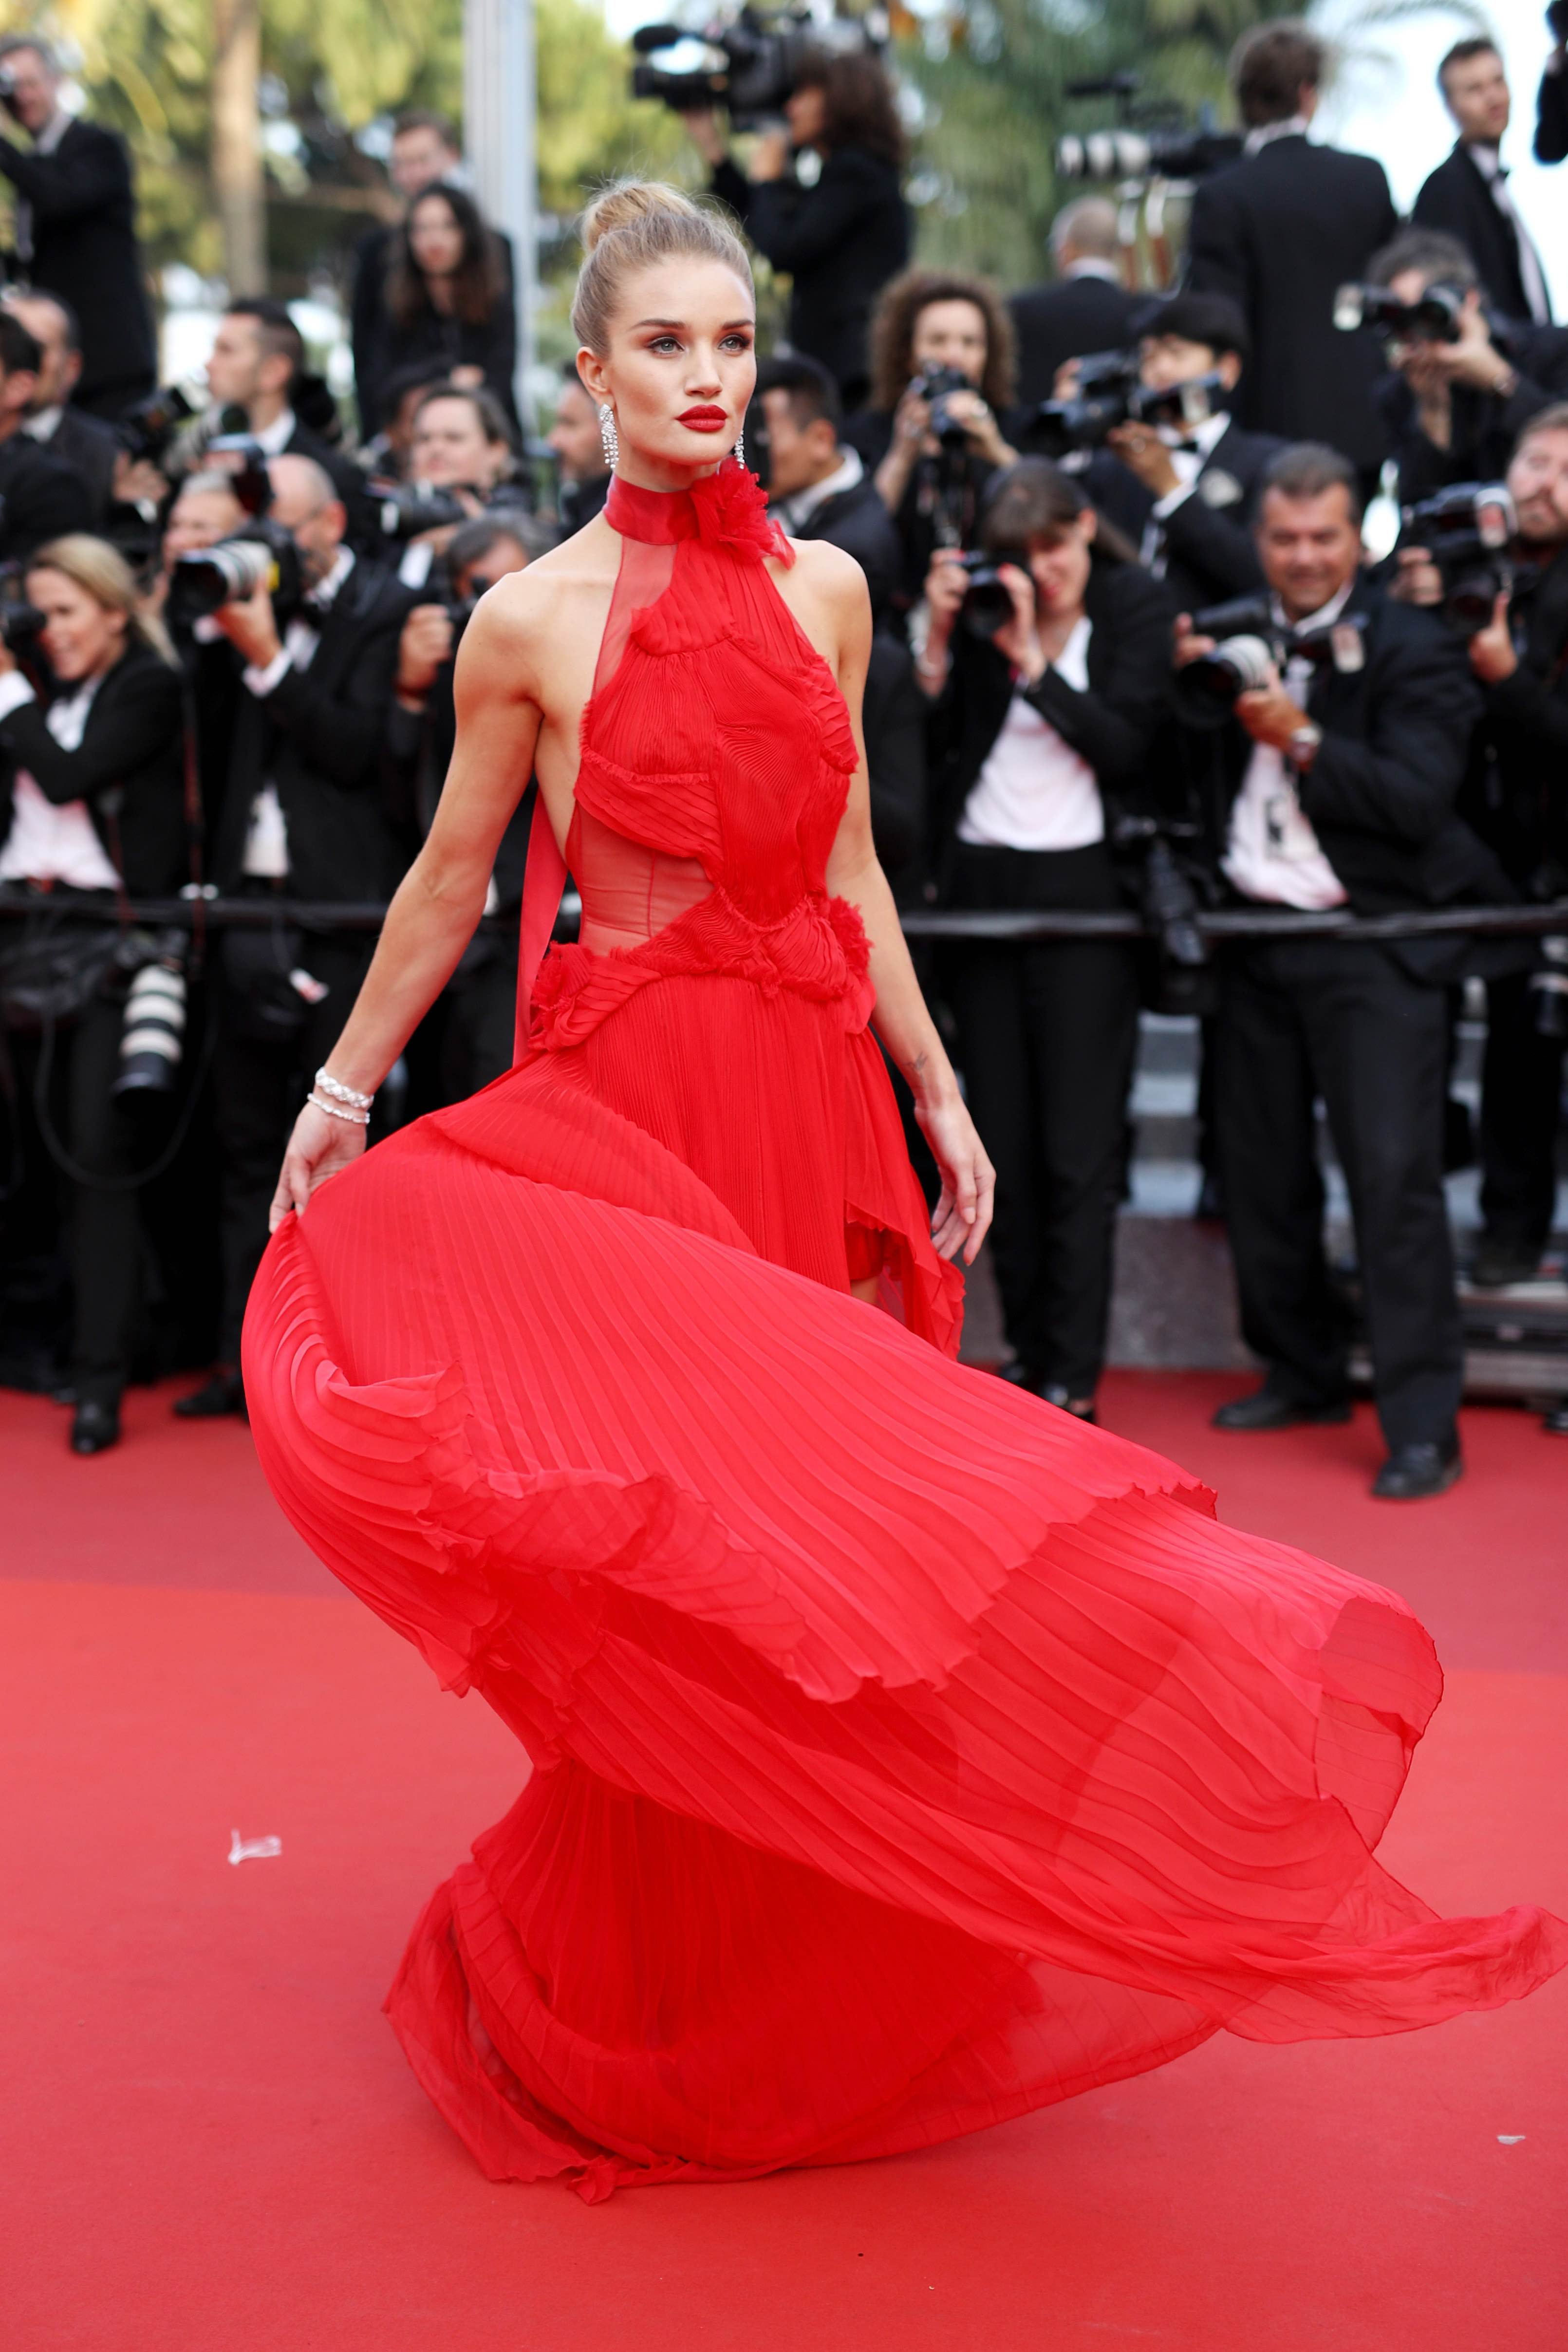 Celebrities in Red Gowns Rosie Huntington-Whiteley